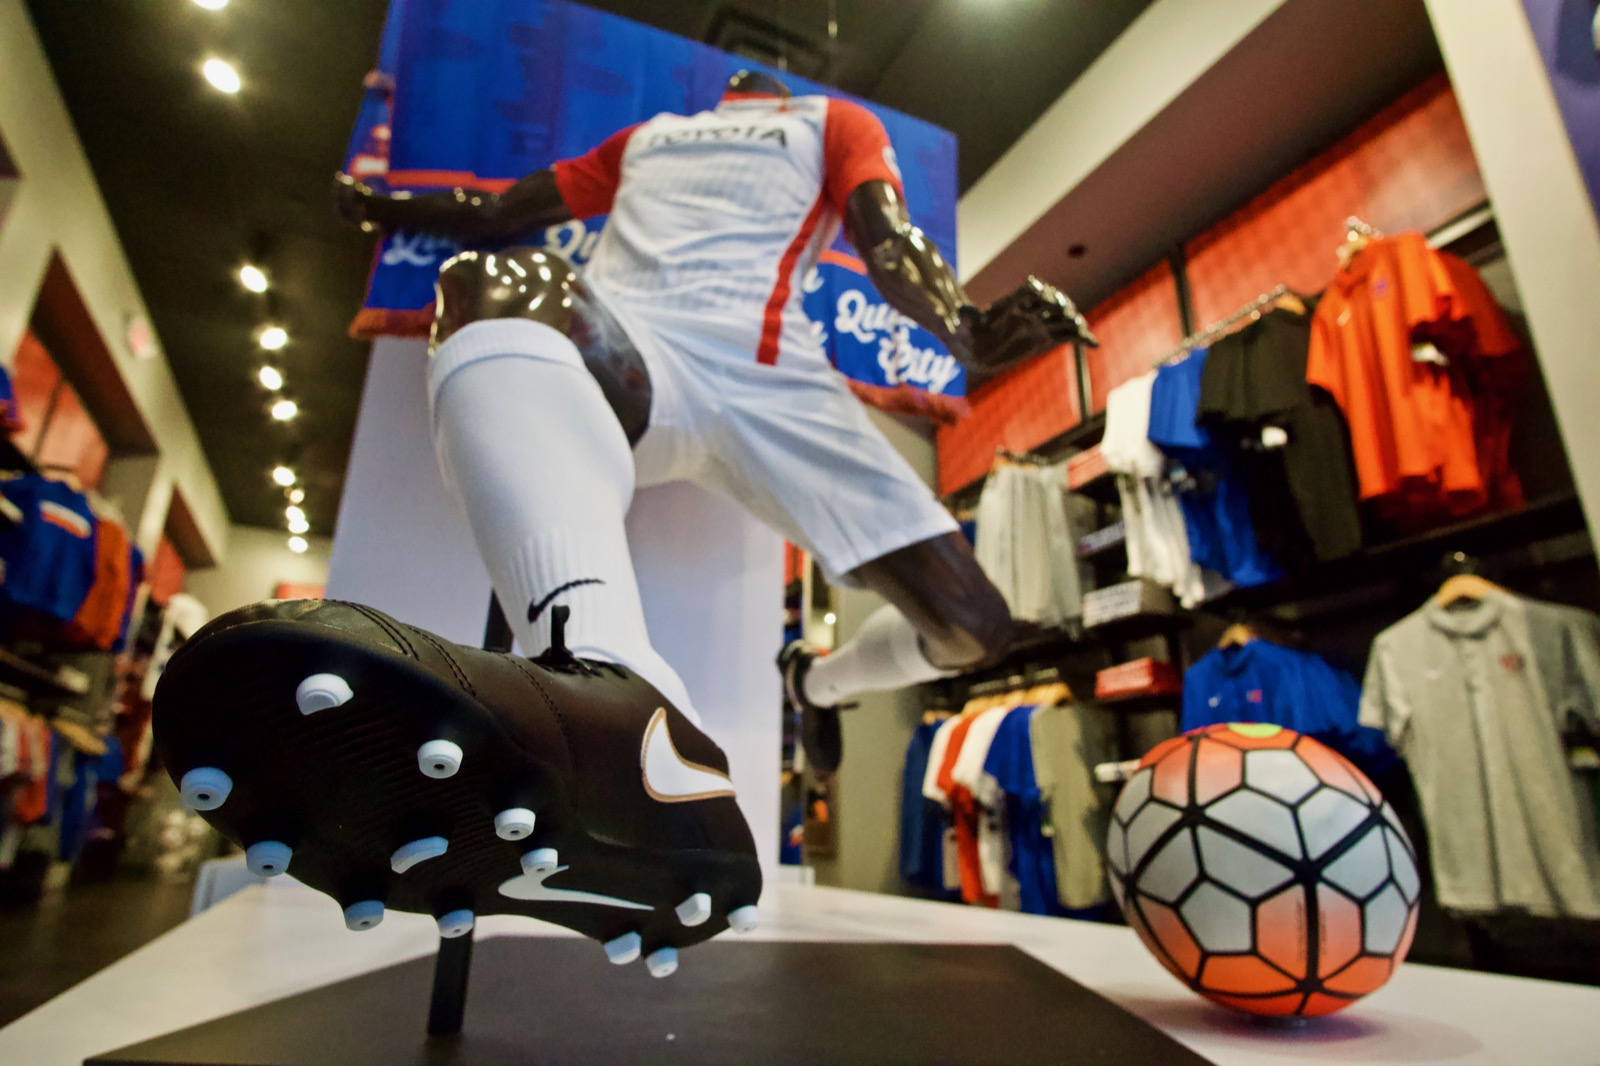 4th Street has a soccer merch store: FC Cincinnati Team Shop / ADDRESS: 43 E 4th Street / Image: Brian Planalp // Published: 4.23.18